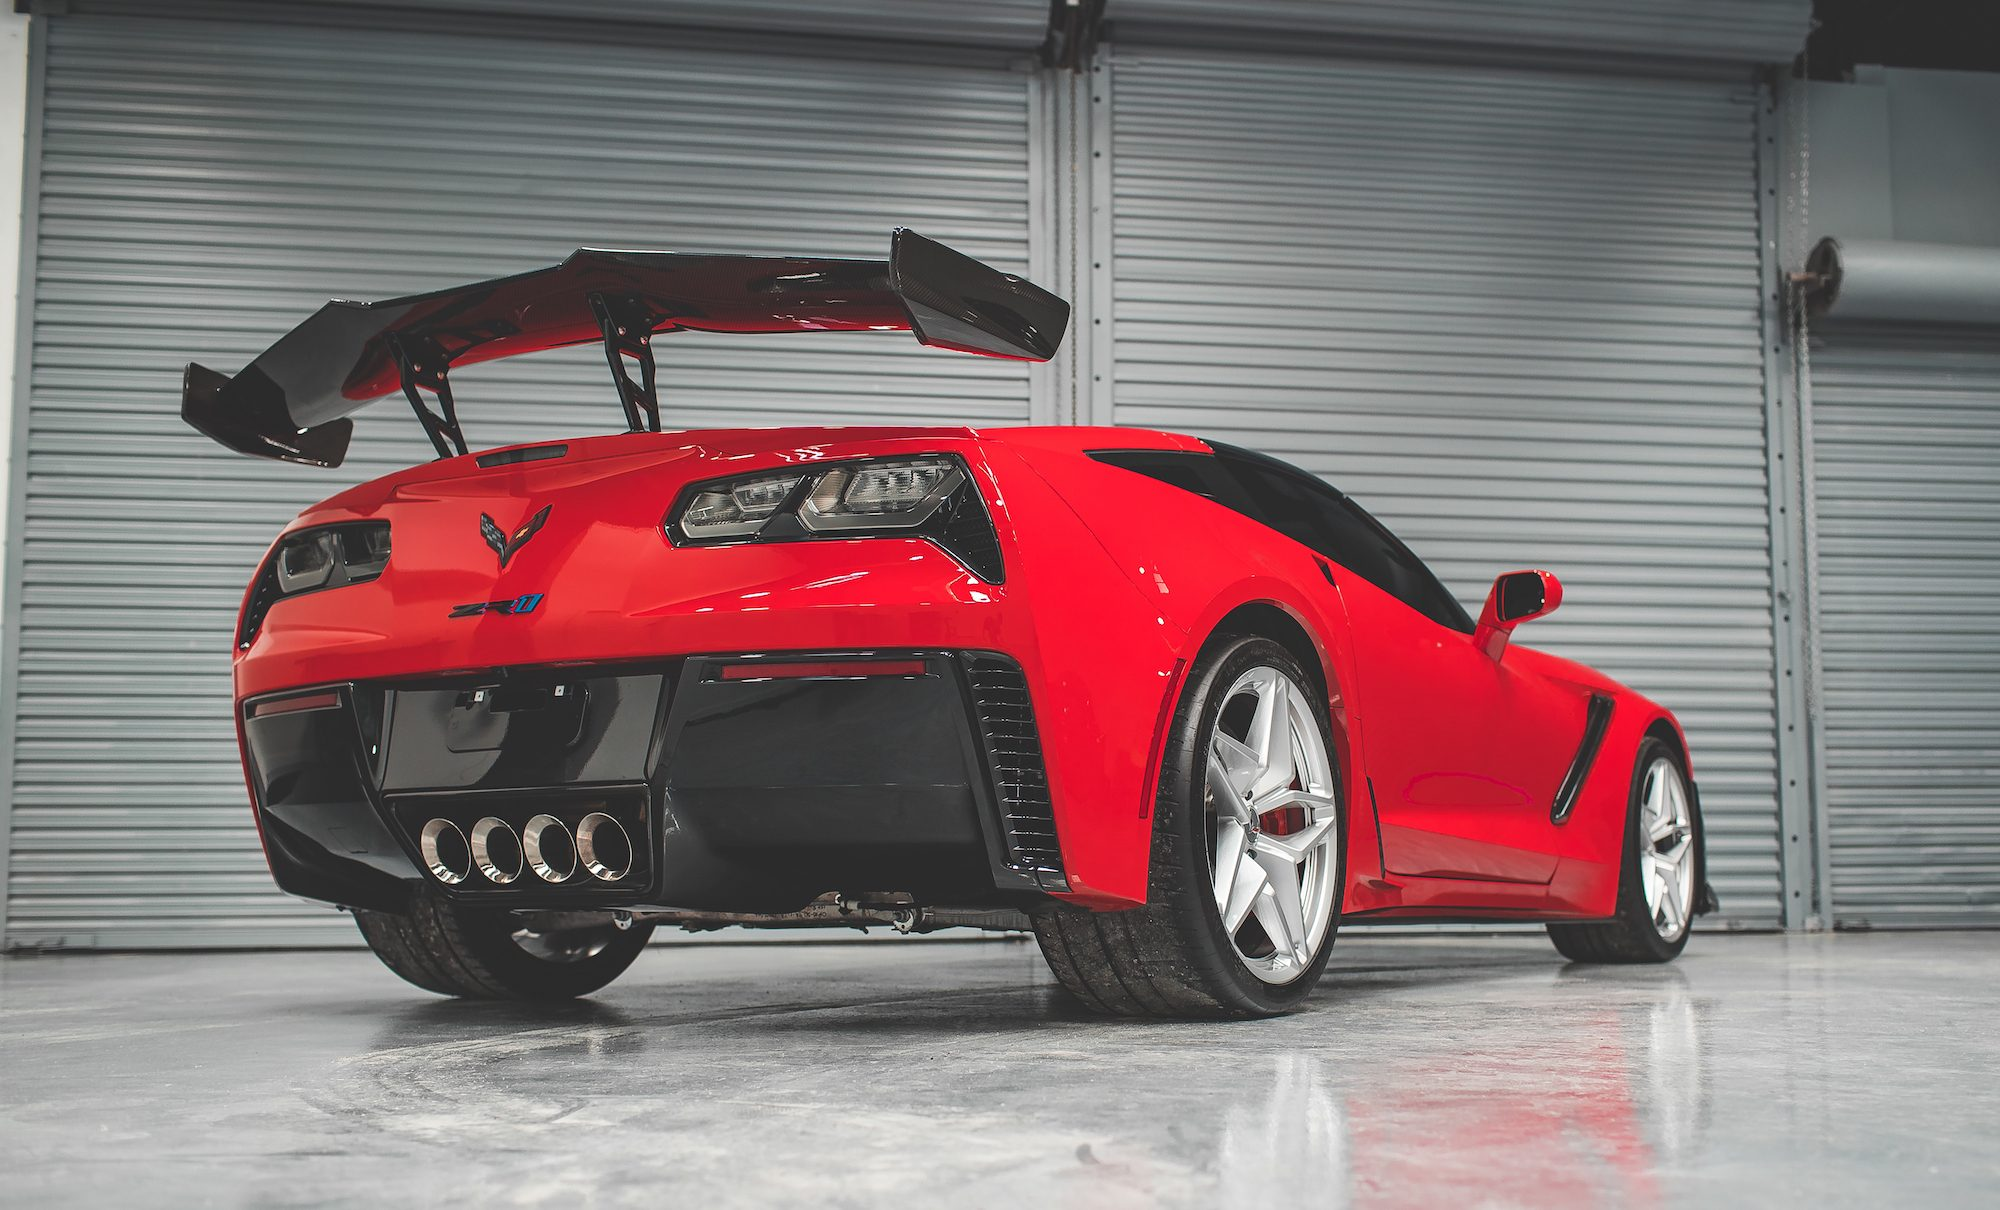 Red Window Tint >> 2019 Red Corvette ZR1 Ceramic Pro Paint Protection ...